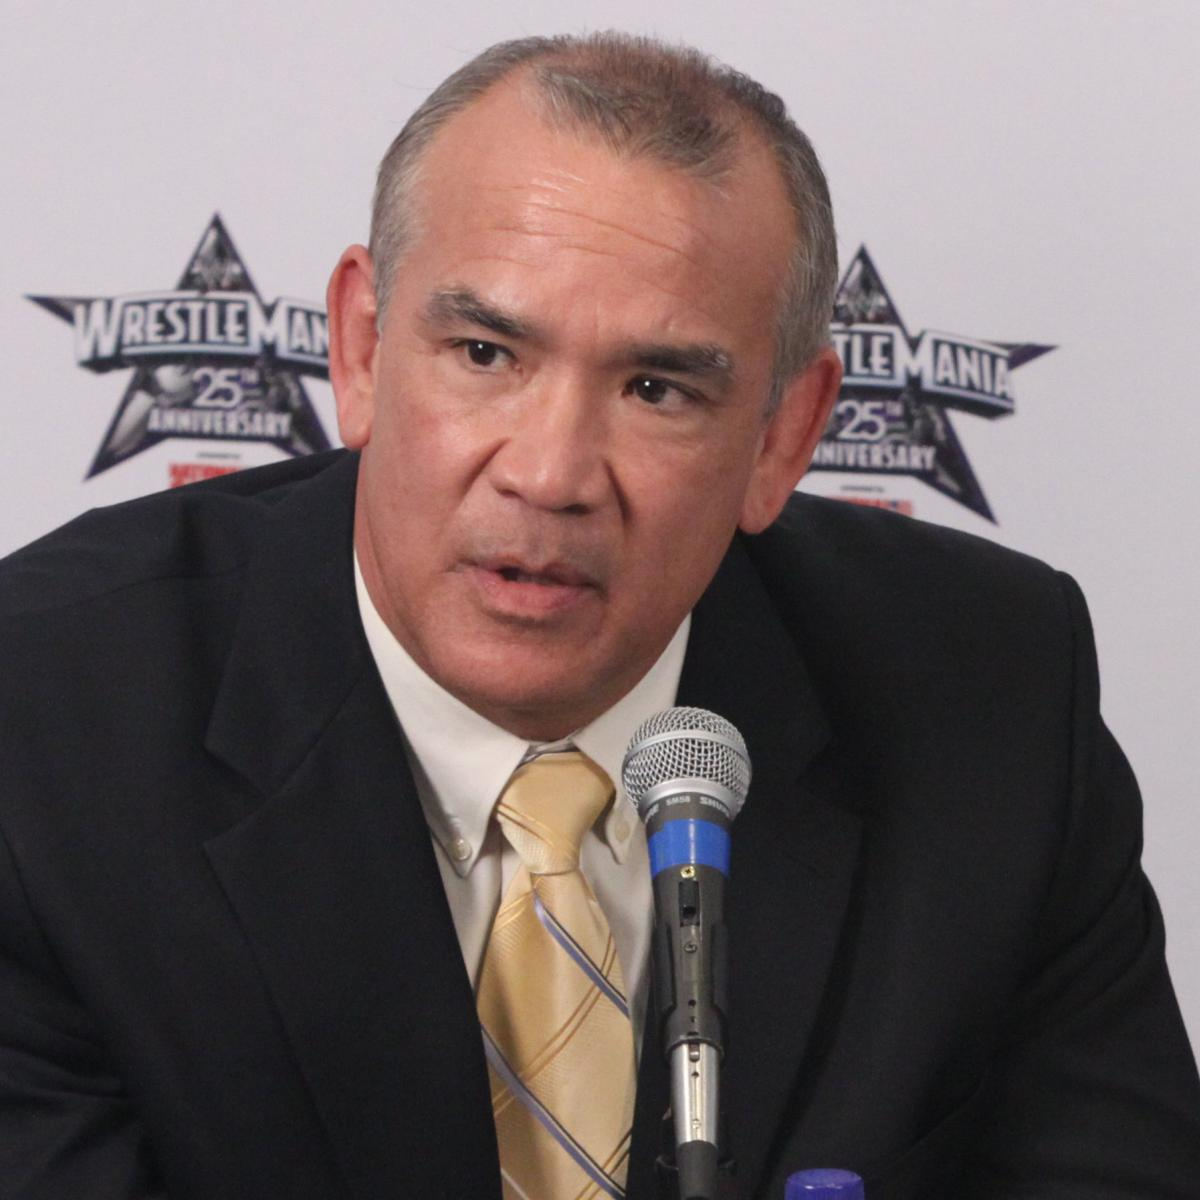 May The 4th Be With You Exclusives: Ricky Steamboat Talks WWE Women's Revolution And More In B